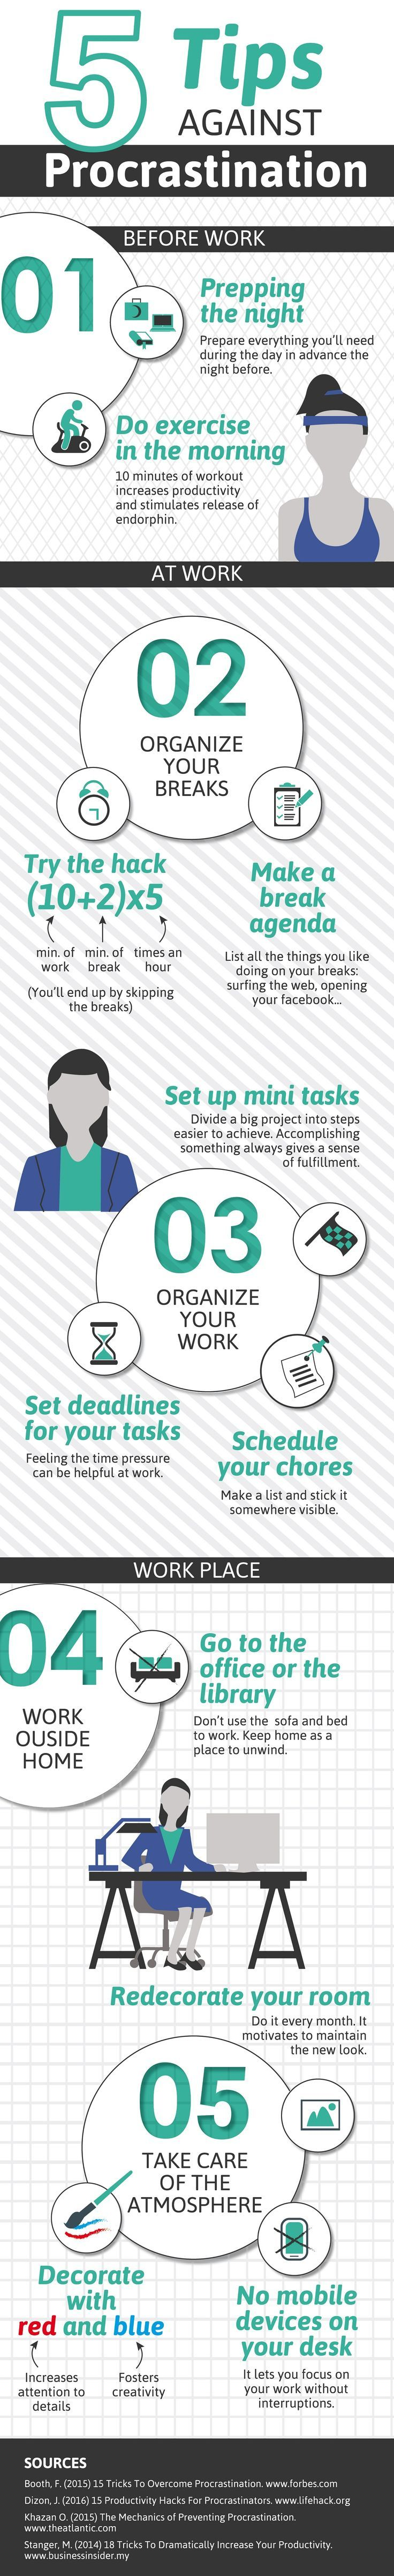 5 Tips against Procrastination. I posted this one mainly for the (10+2) x 5 rule. I thought that following that rule was a great way to get the most out of a single hour!